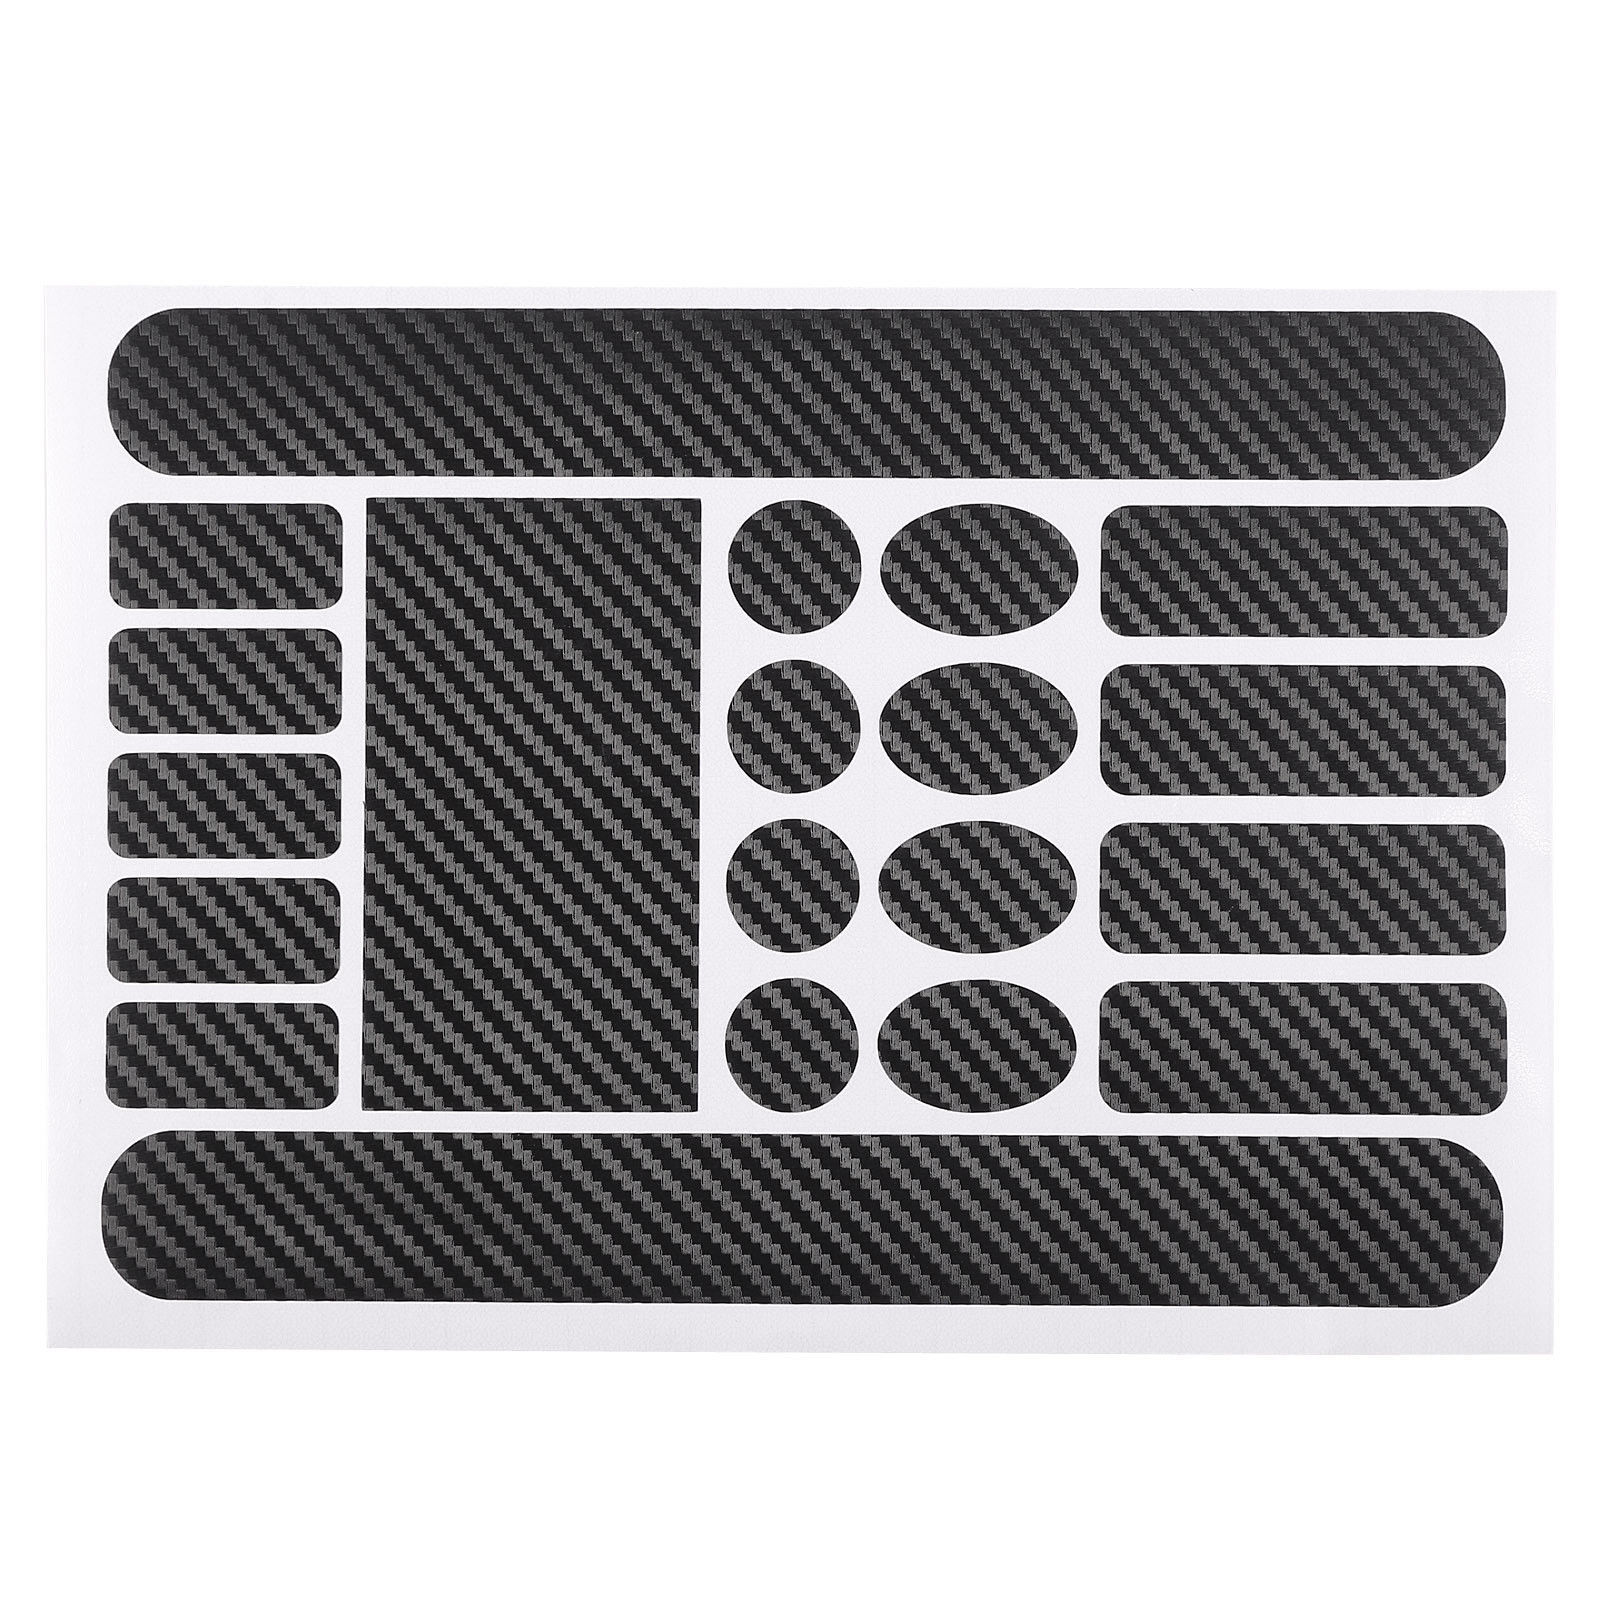 Bicycle Sticker Scratch Prevention Bike Chain Protection Frame Sticker Anti-friction Accessories Carbon Grain